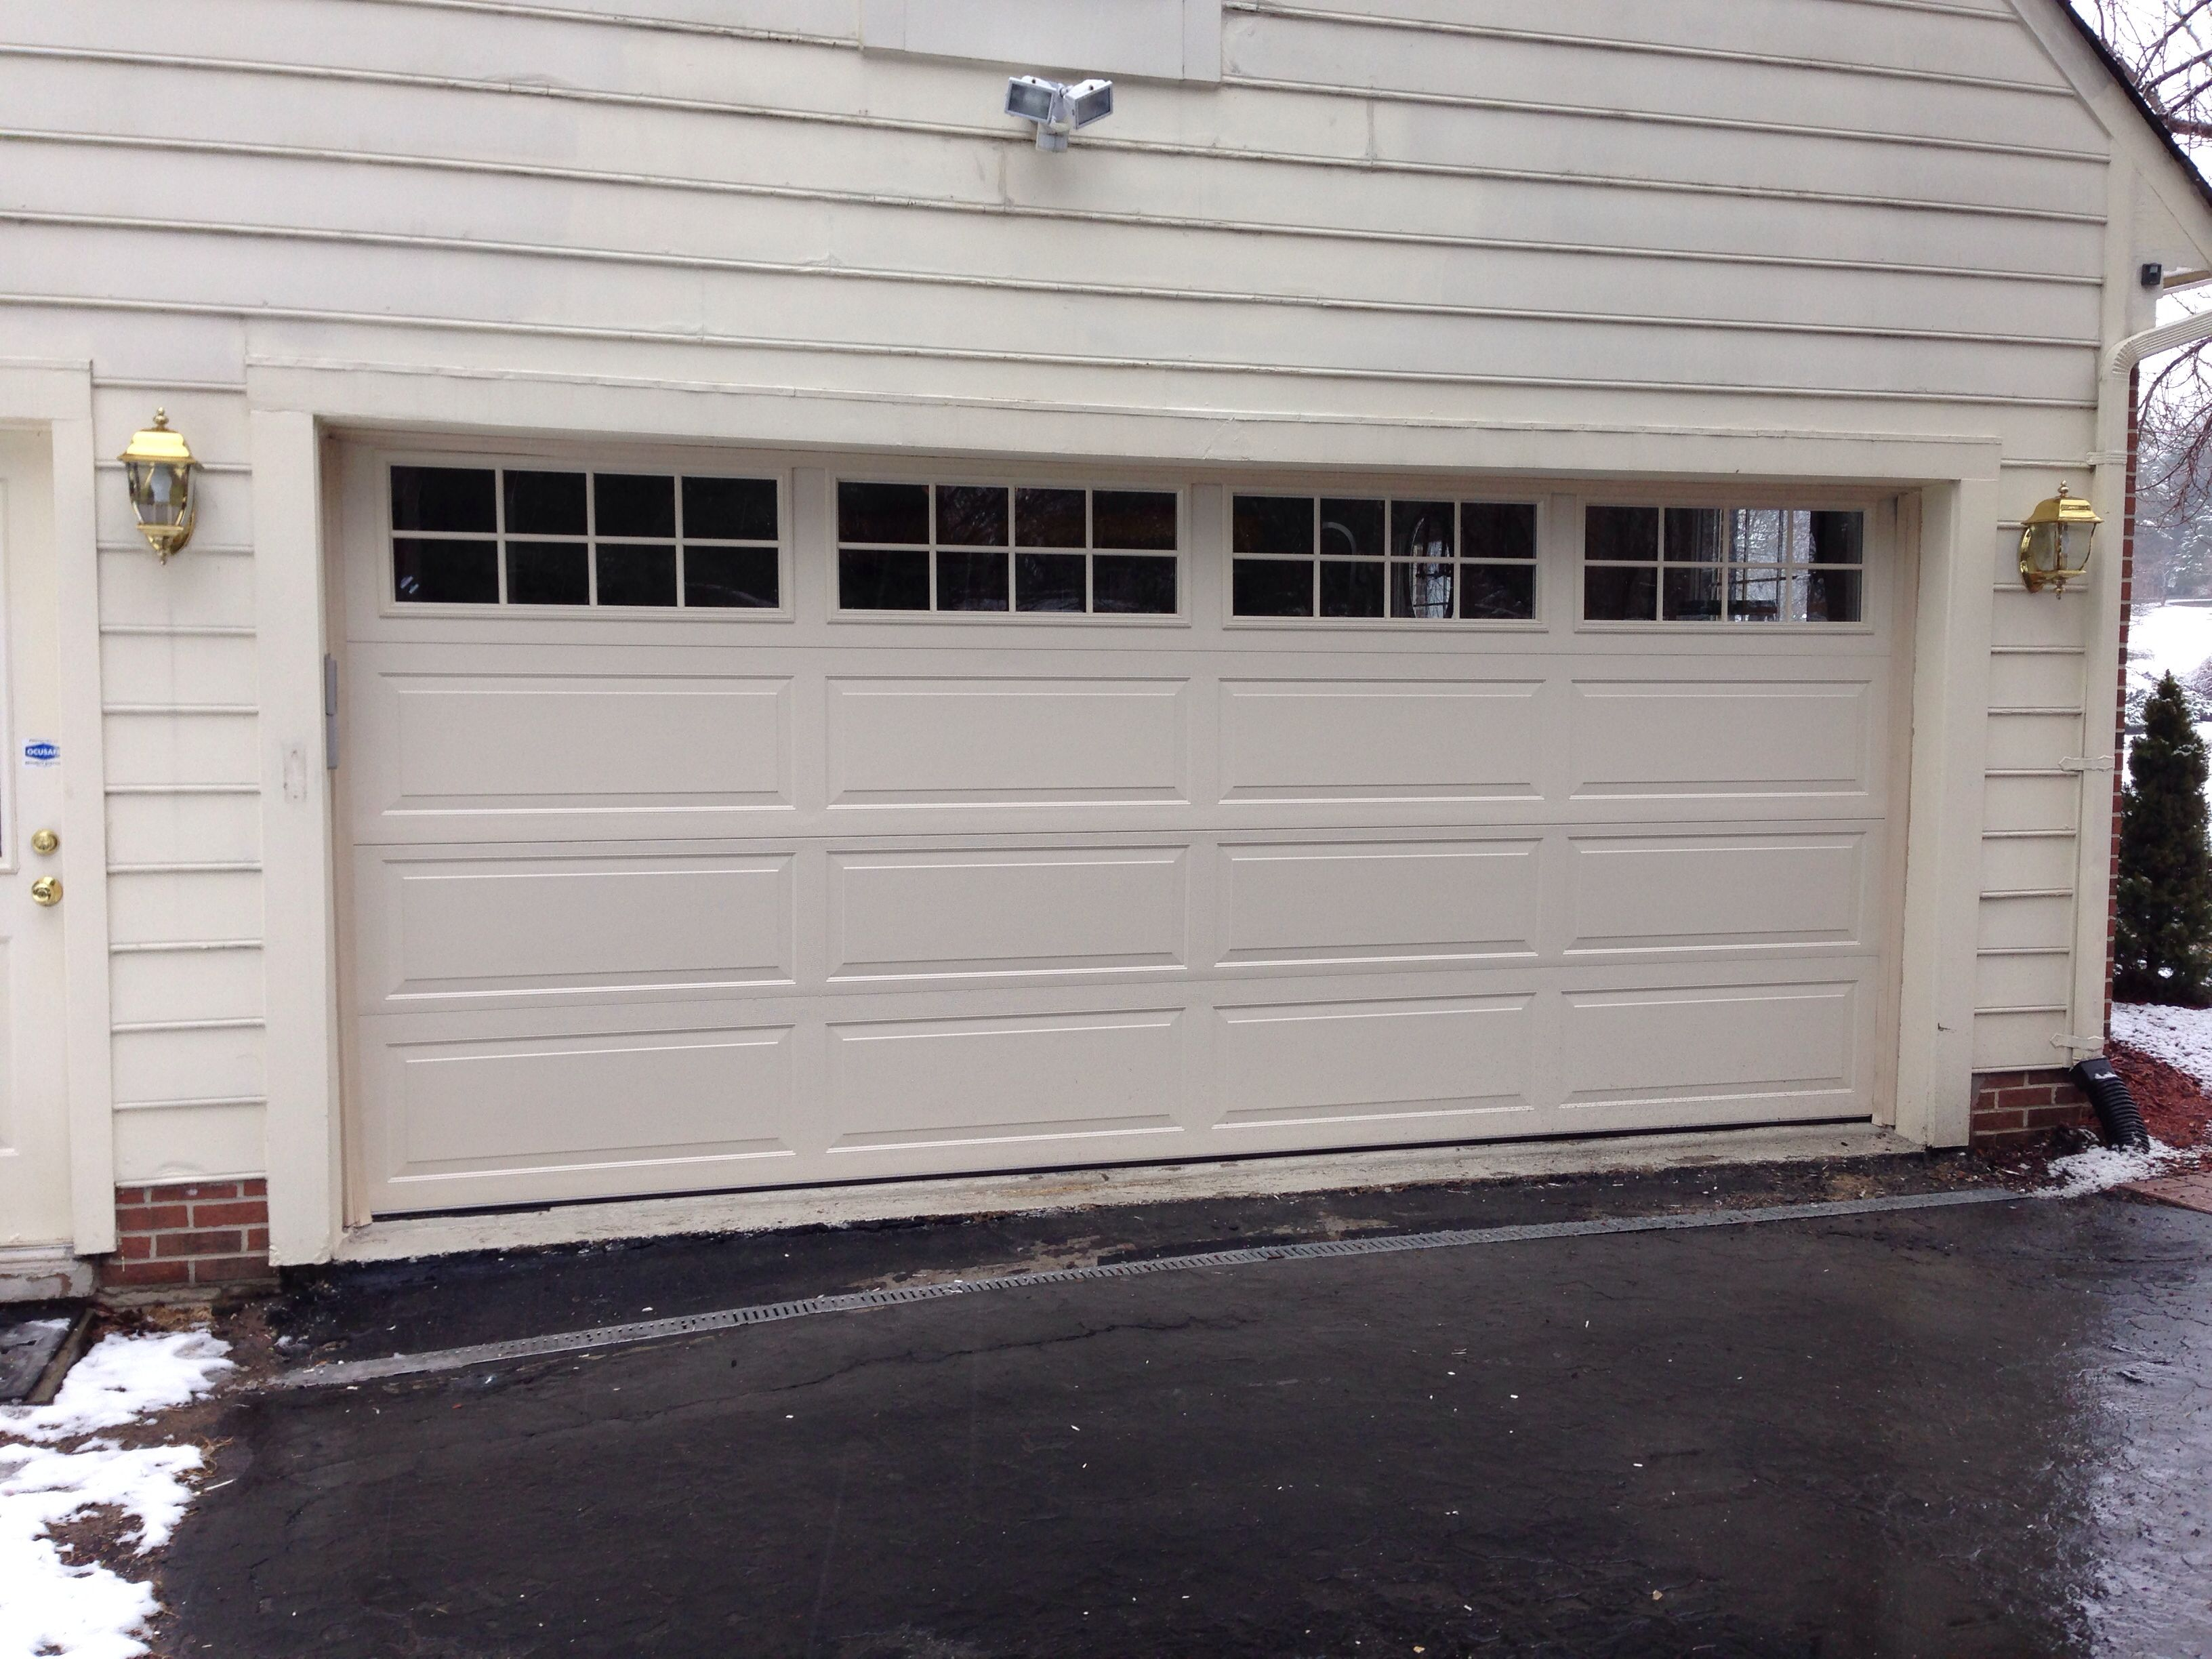 High Insulated Steel Carriage Garage Door With Extra Large Windows In Potomac Md By Crisway Doors Garage Doors Broken Garage Door Garage Door Opener Repair